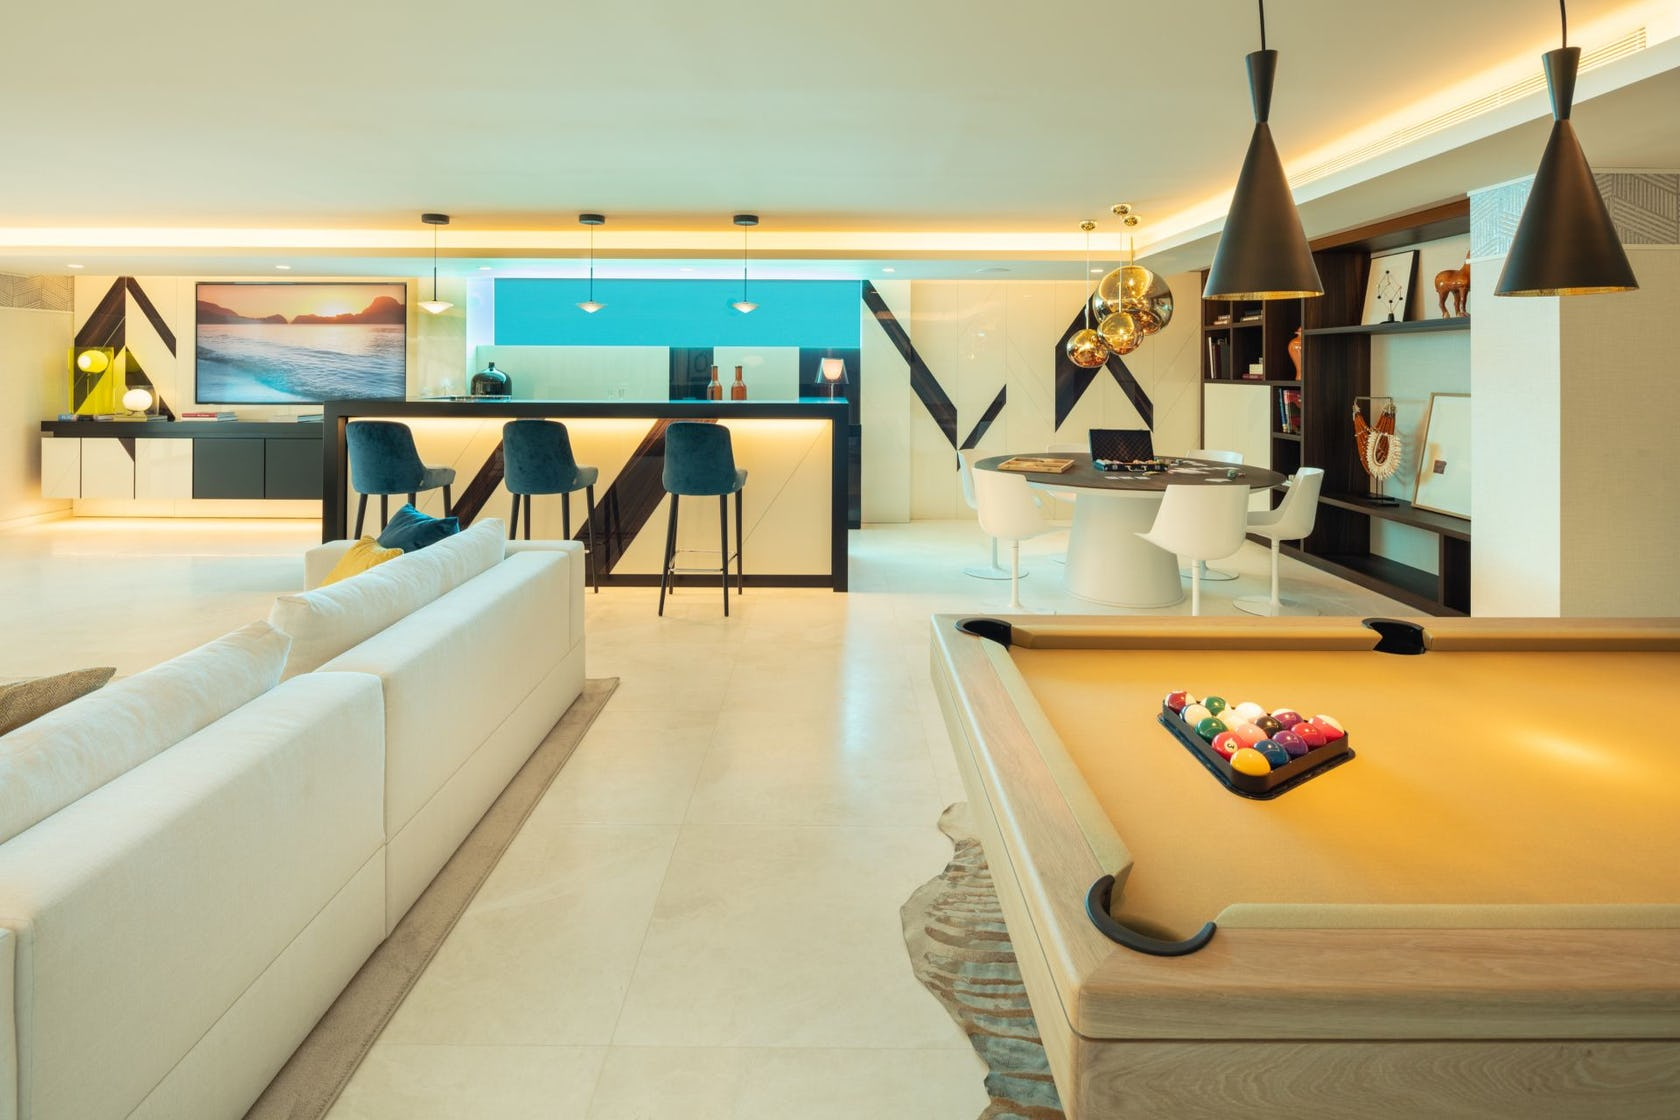 furniture indoors room couch table flooring living room